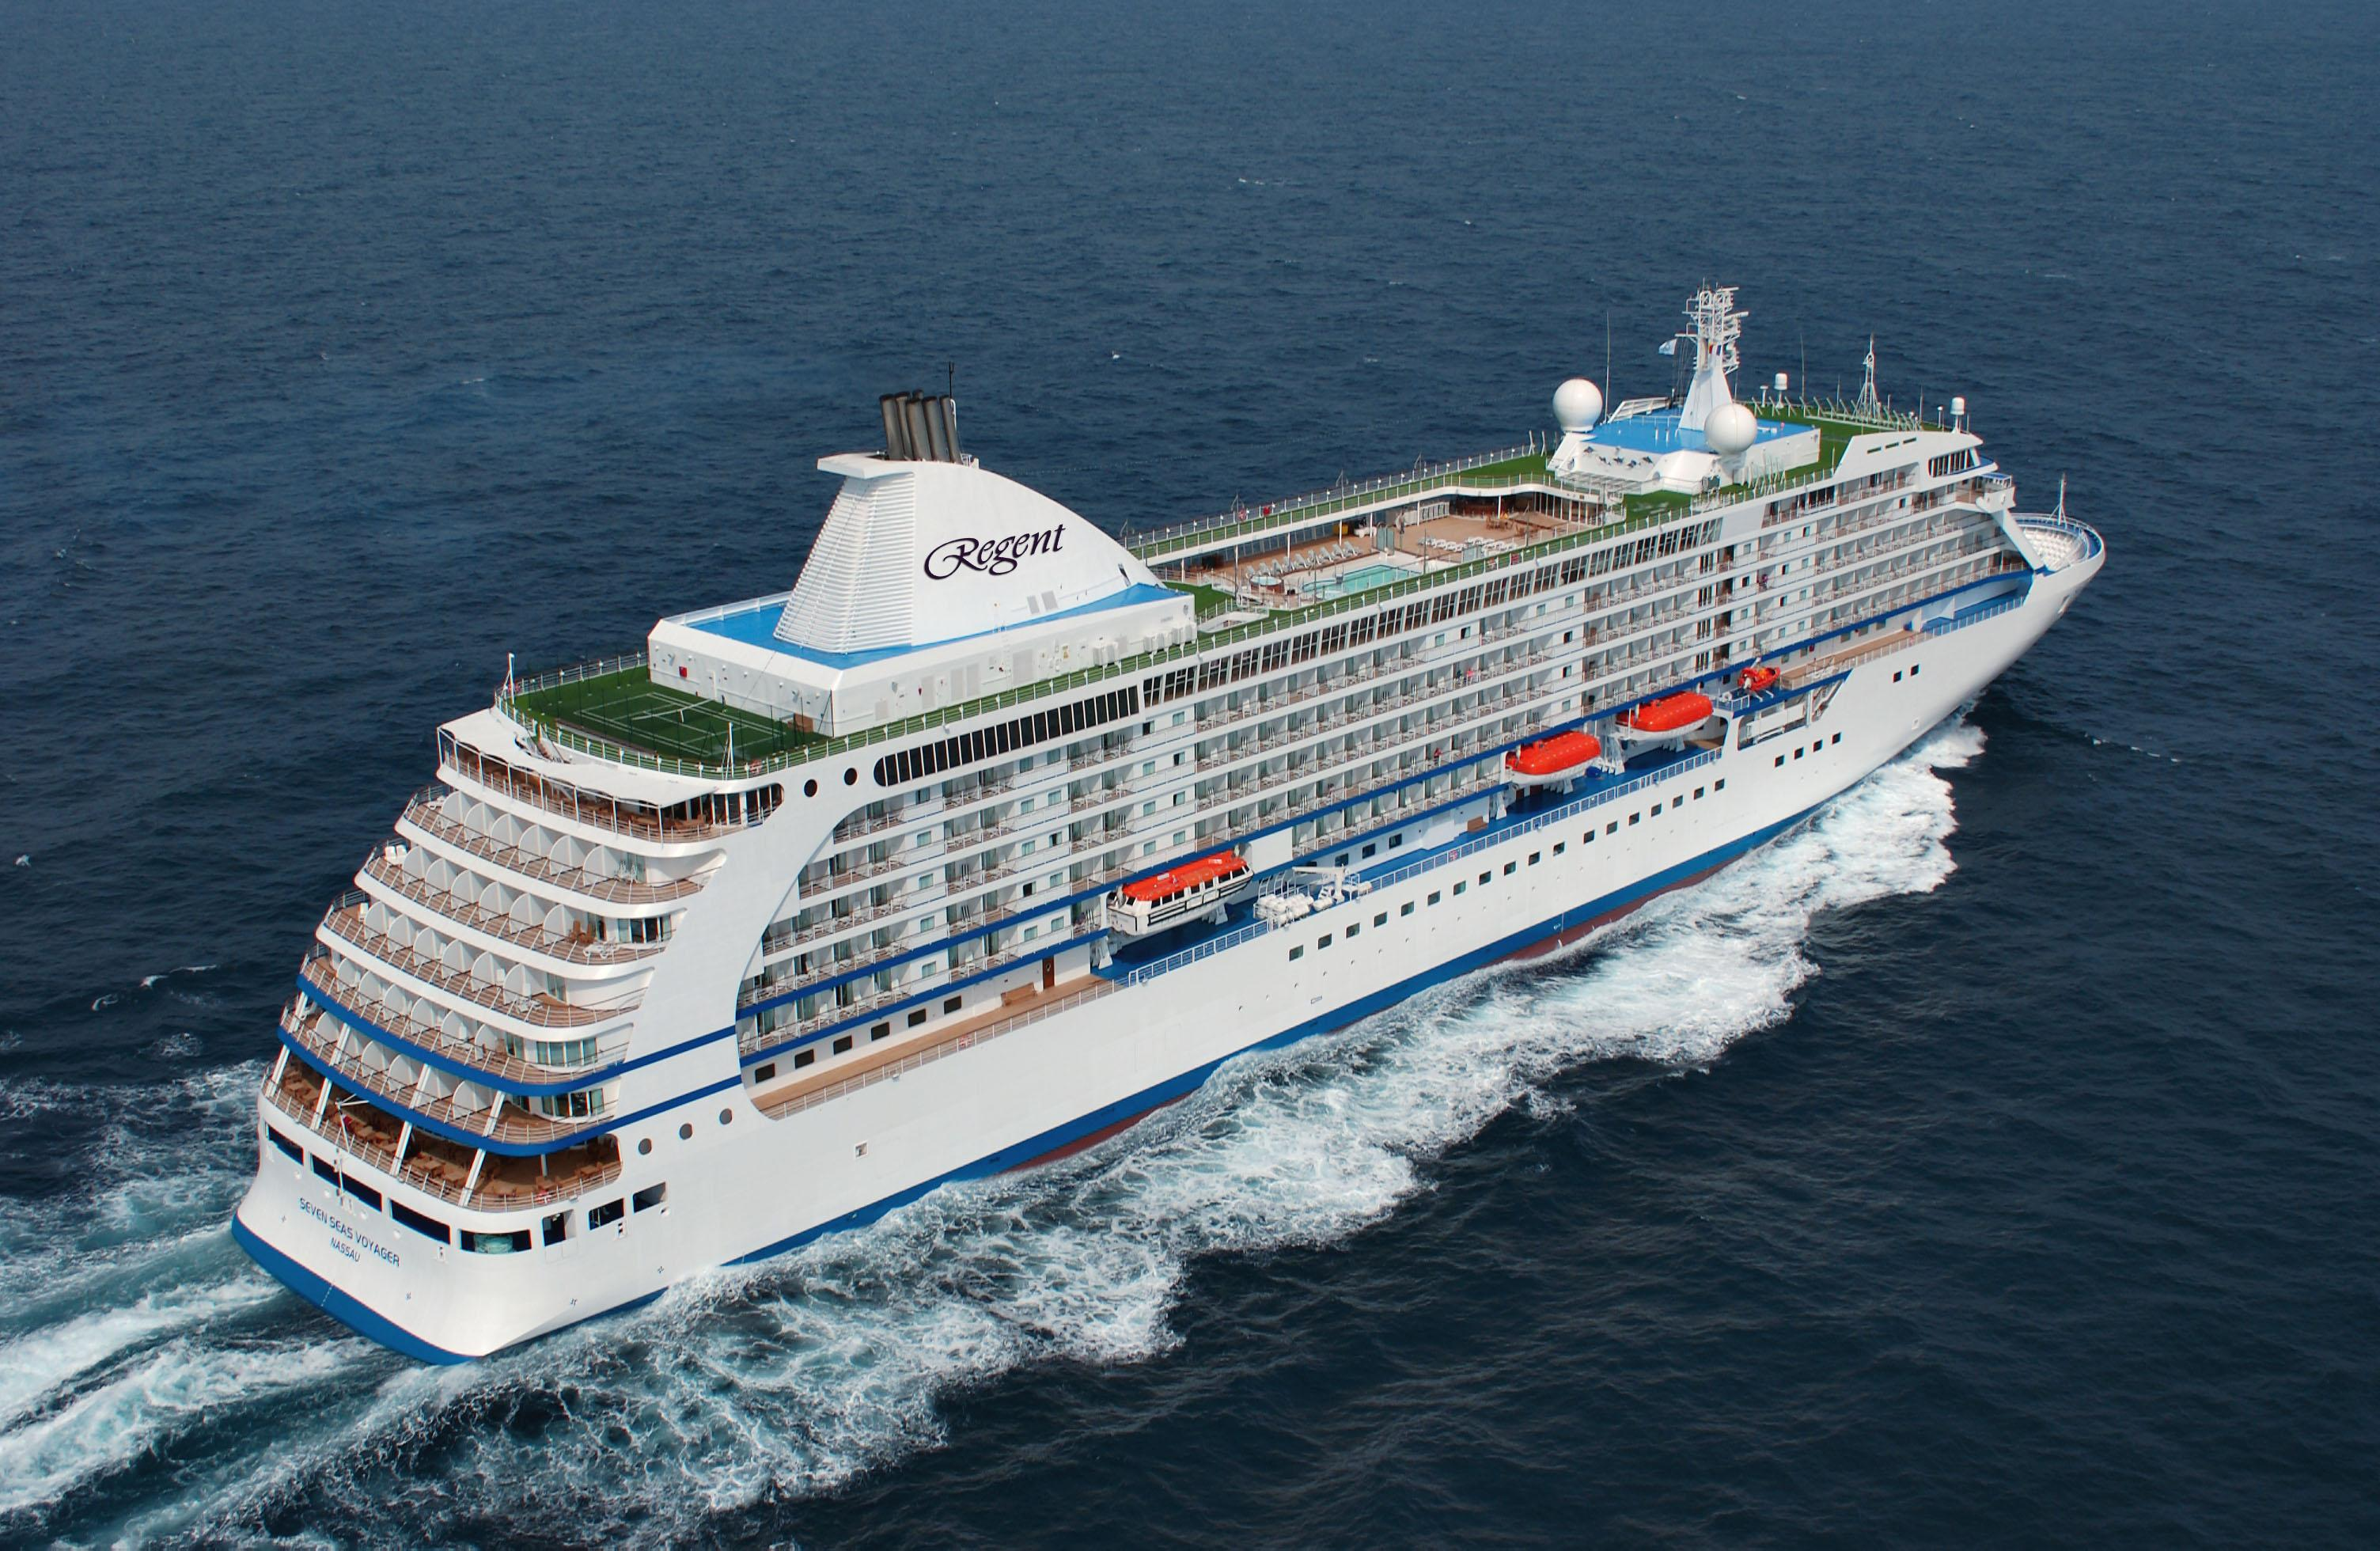 business overview of regent seven seas cruises Regent seven seas cruises starting from $3320 compare over 961 regent  seven seas cruise reviews, see detailed cruise ship photos, and learn more  about.